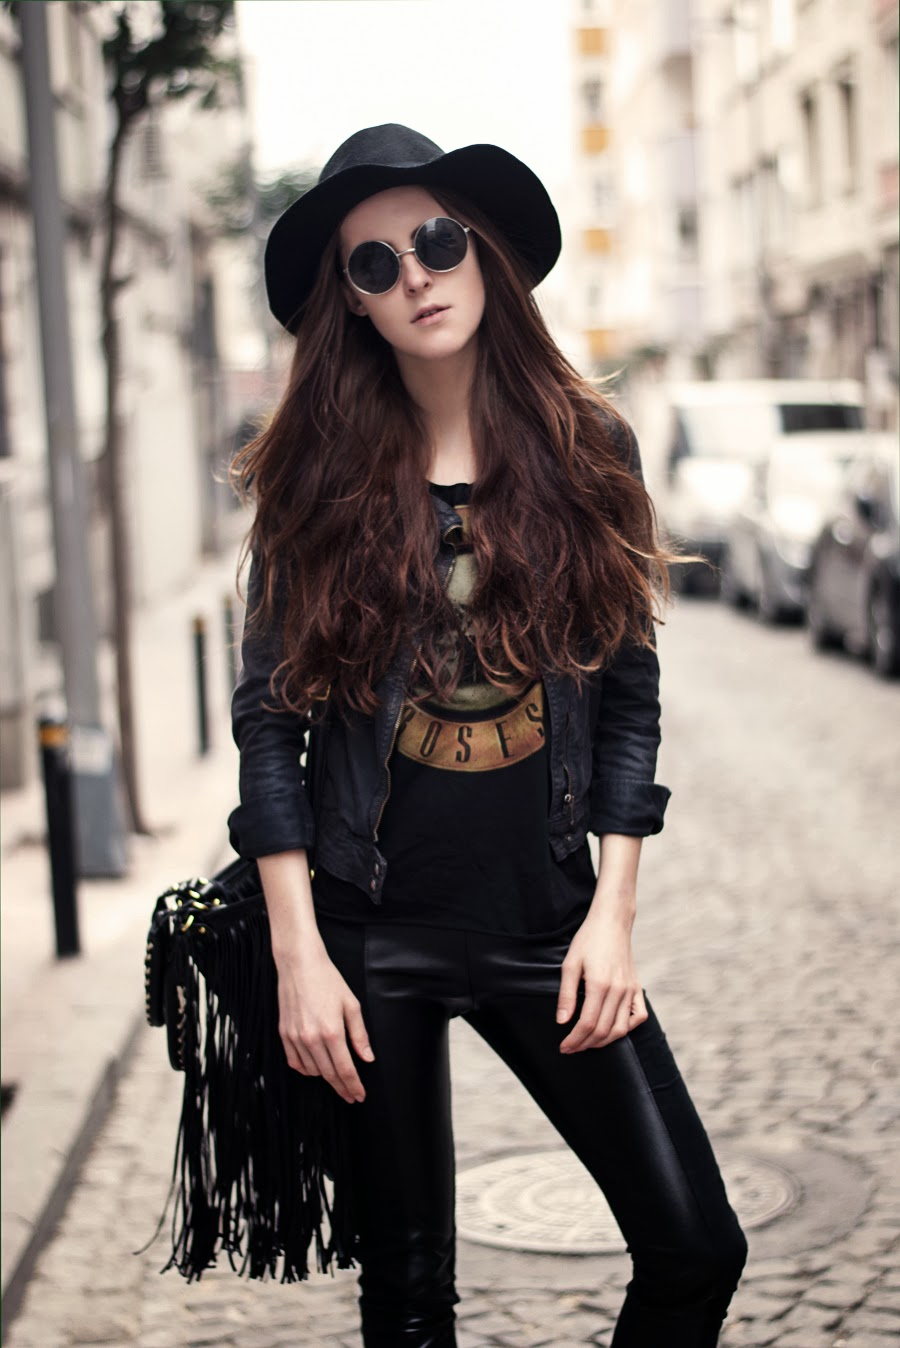 rocker outfit , street style, guns and rose top, fedora hat outfit, istanbul blogger, russian blogger, fashion details, long hair